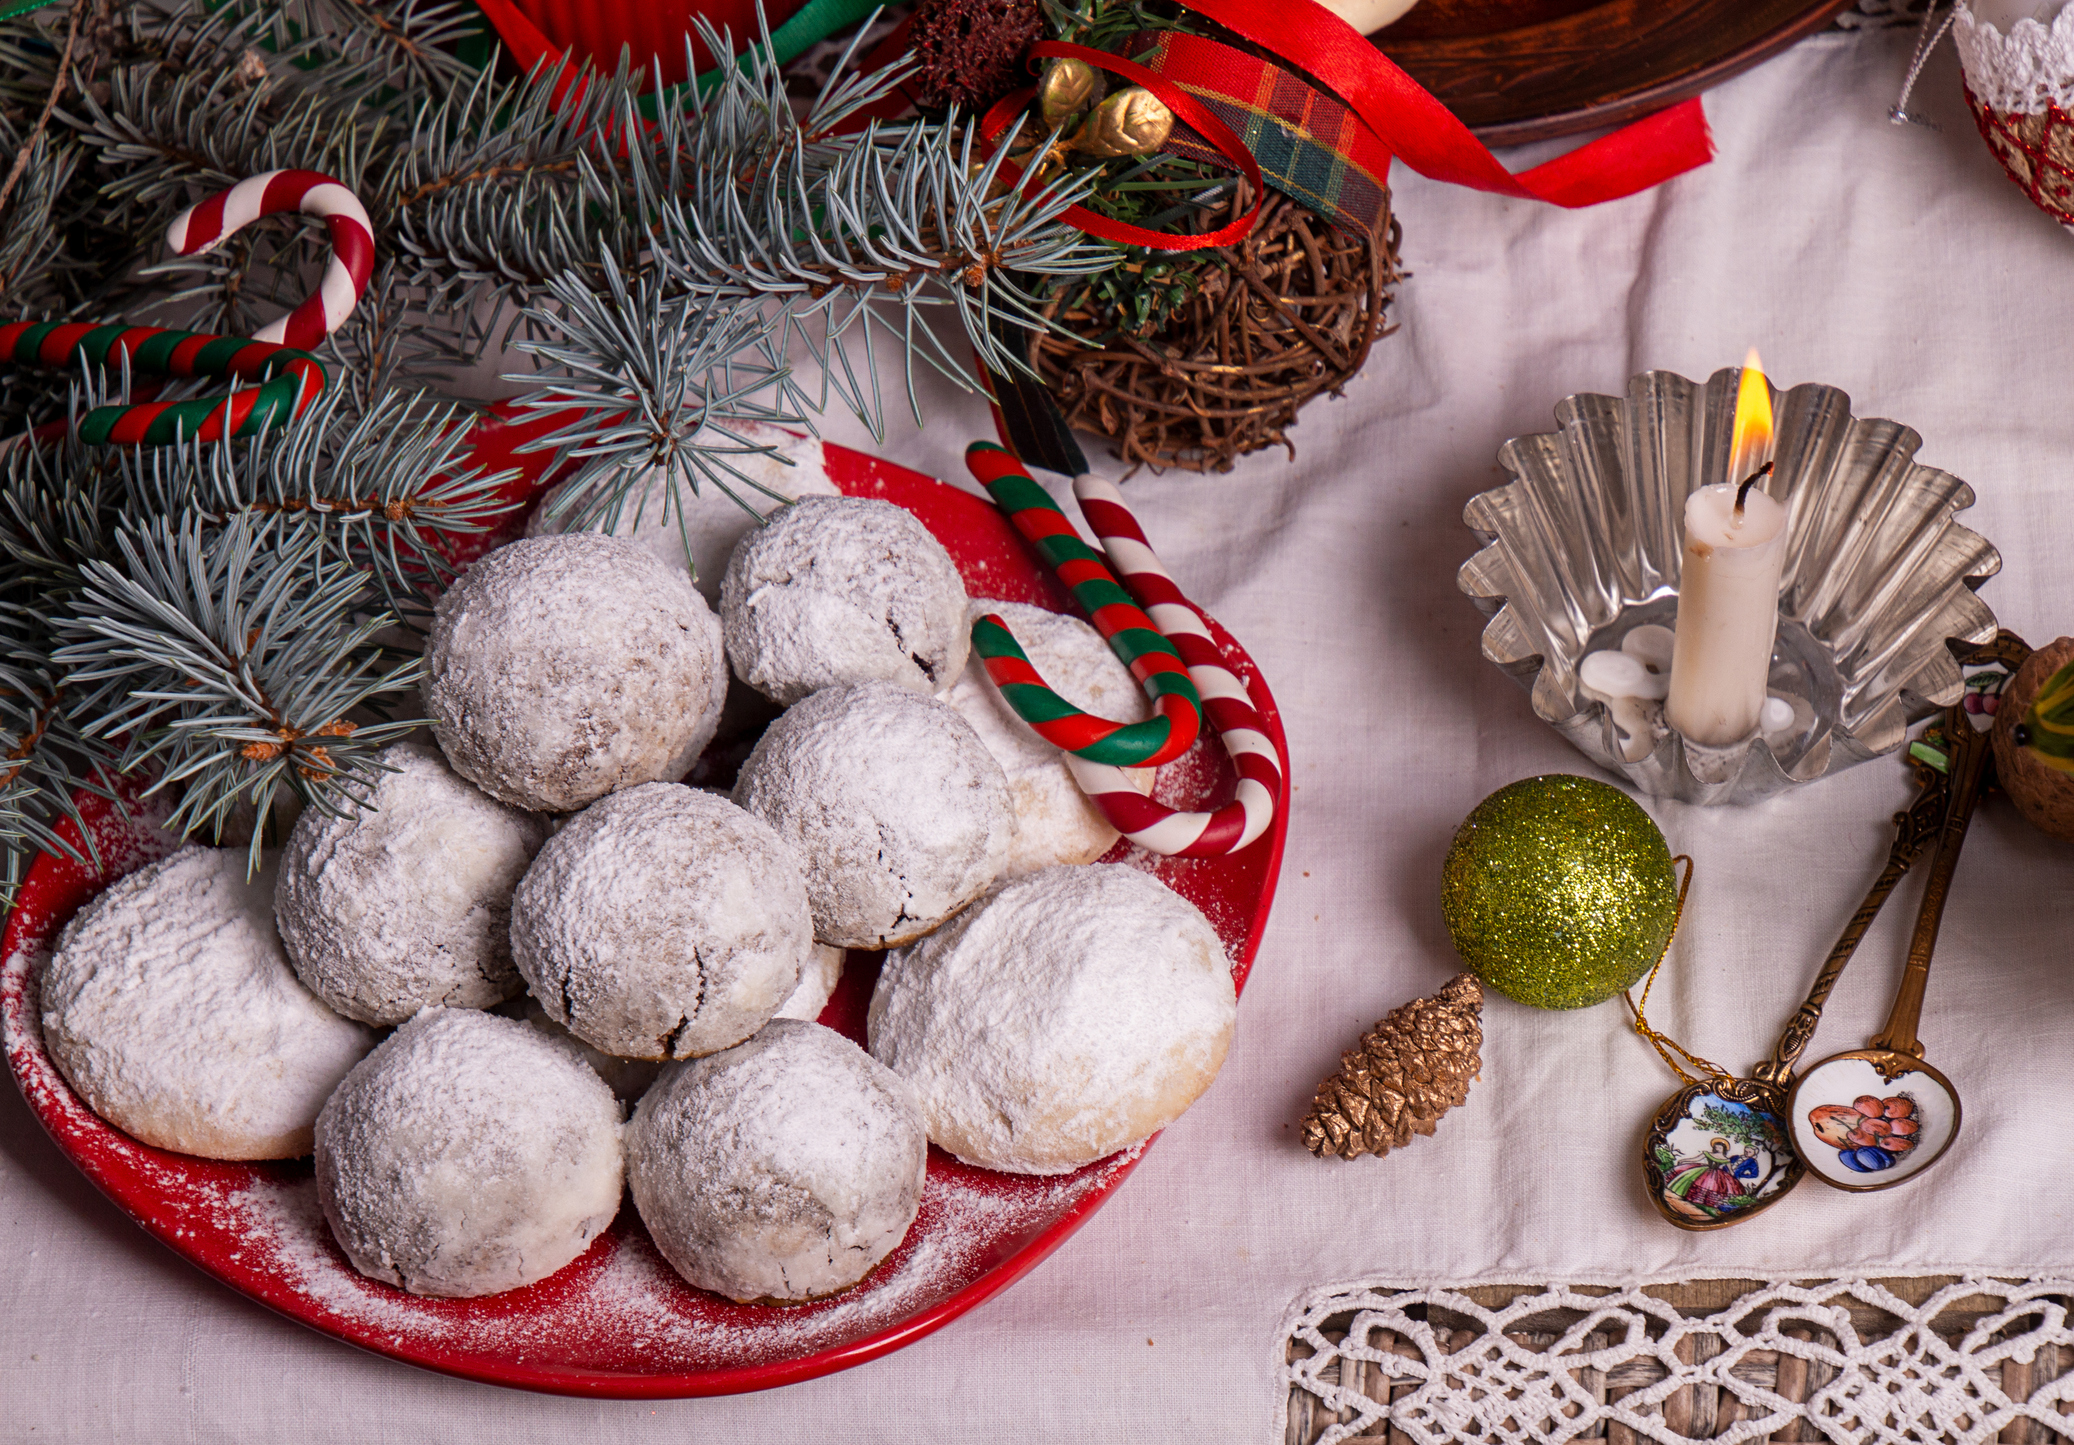 10. Snowball Cookies